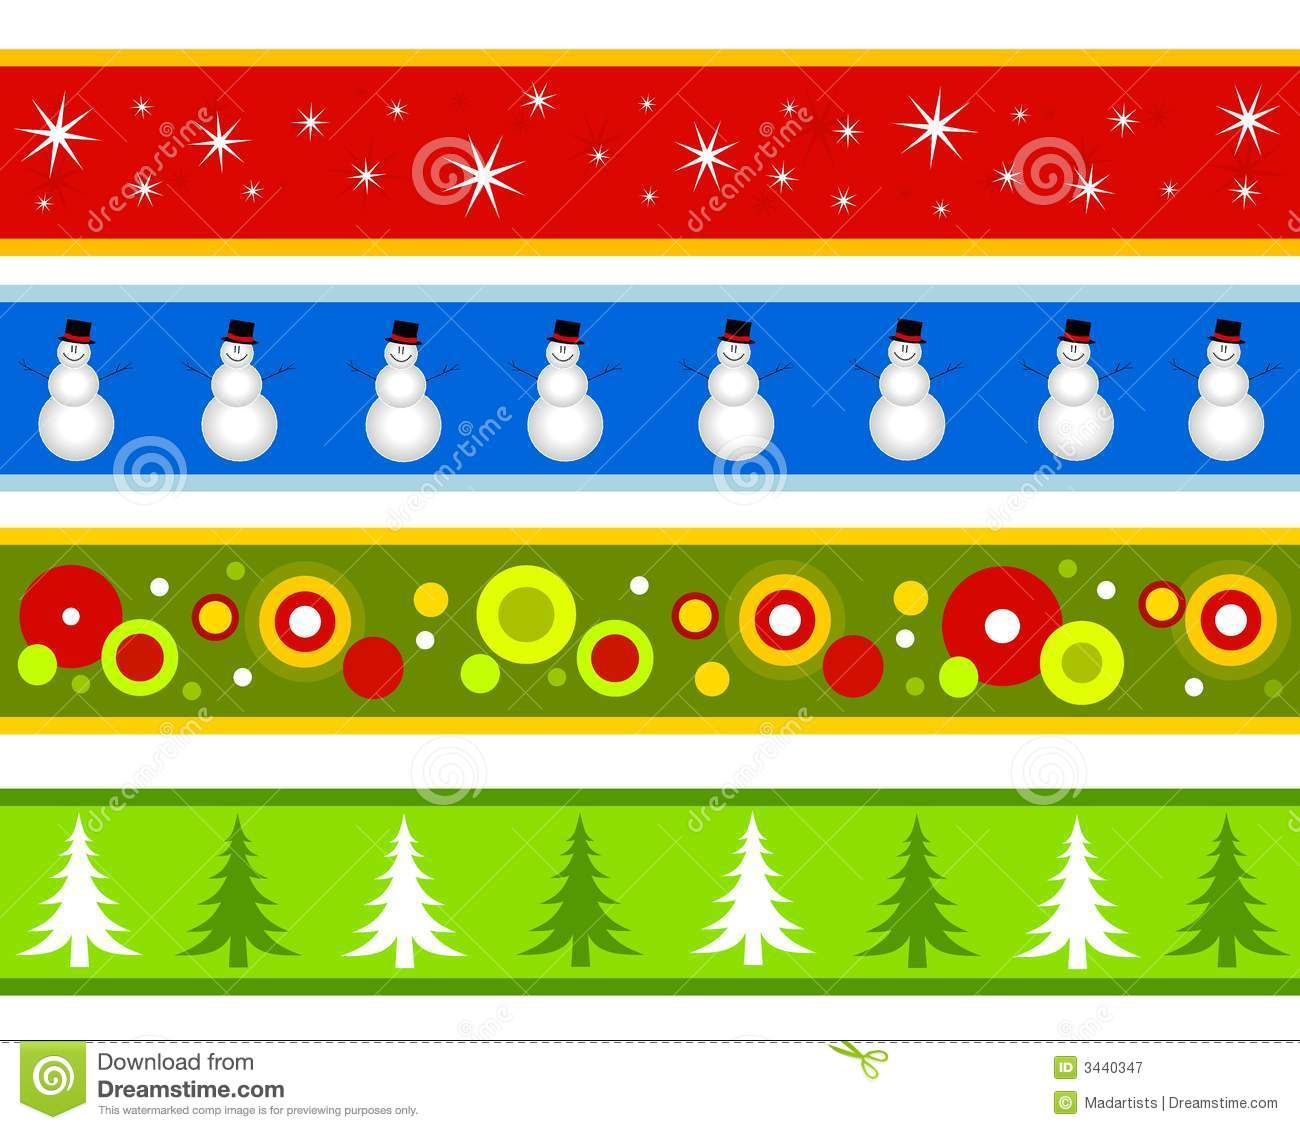 christmas borders or banners royalty free stock three wise kings clipart three wise men clipart for cricut